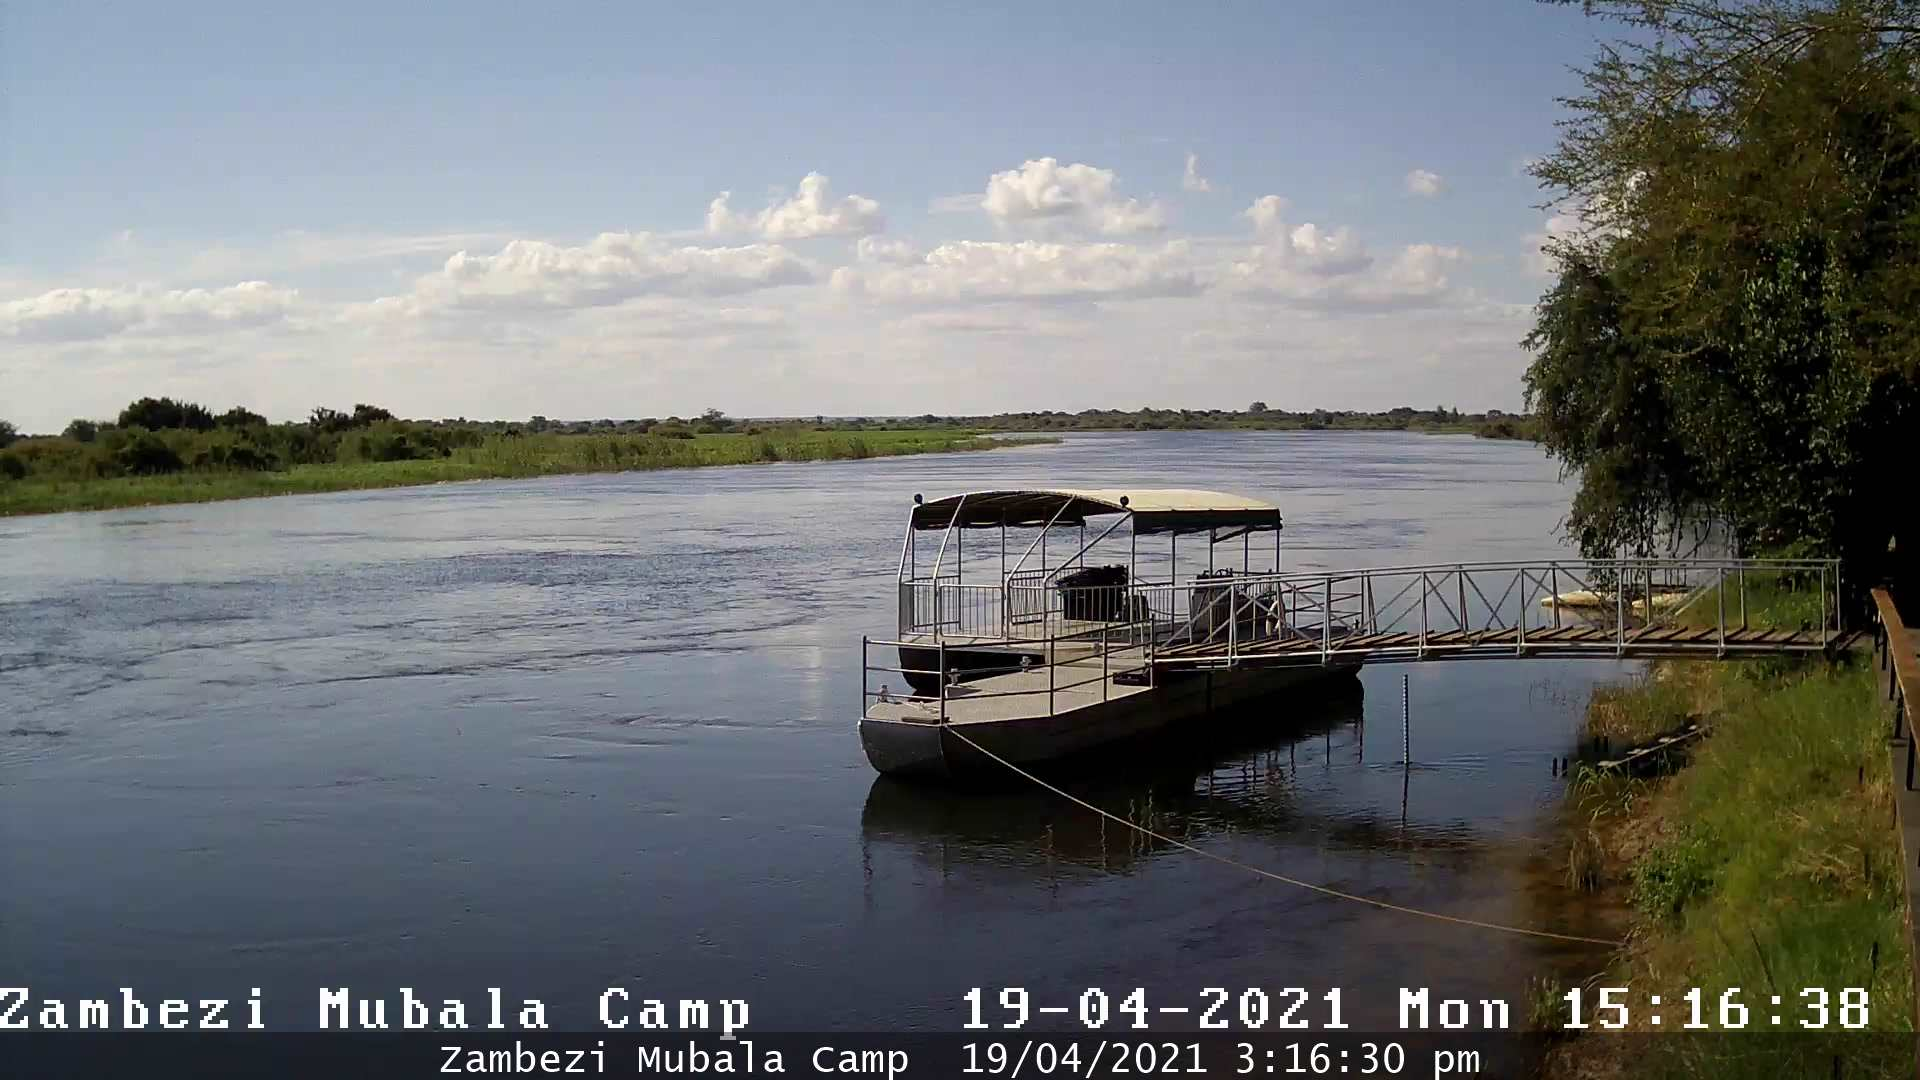 Zambezi Mubala Camp WebCam